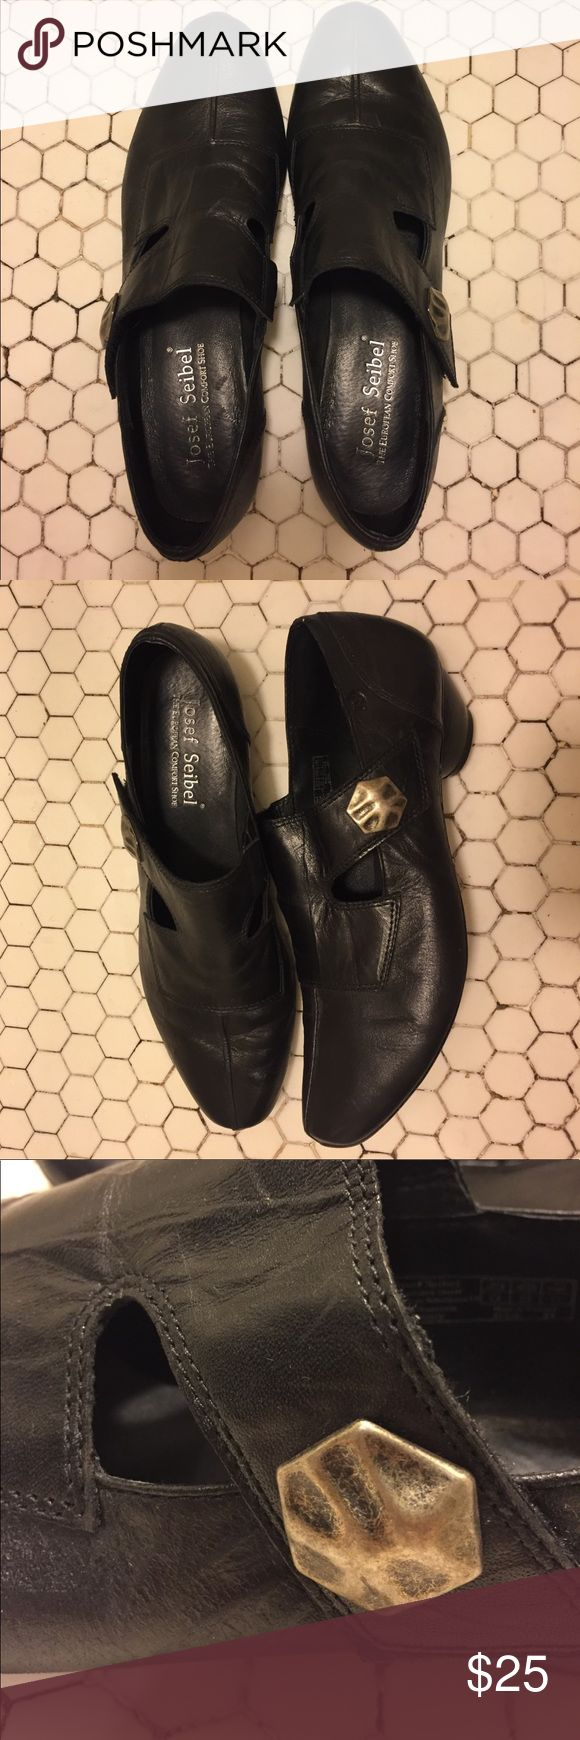 "The European Comfort Shoe Josef Seibel leather shoes. Crazy comfortable!! Velcro strap with cute button detail. 1"" heel. Lightly worn. Not kidding these are comfy!! Labeled as a 41, fits size 10. Josef Seibel Shoes Flats & Loafers"